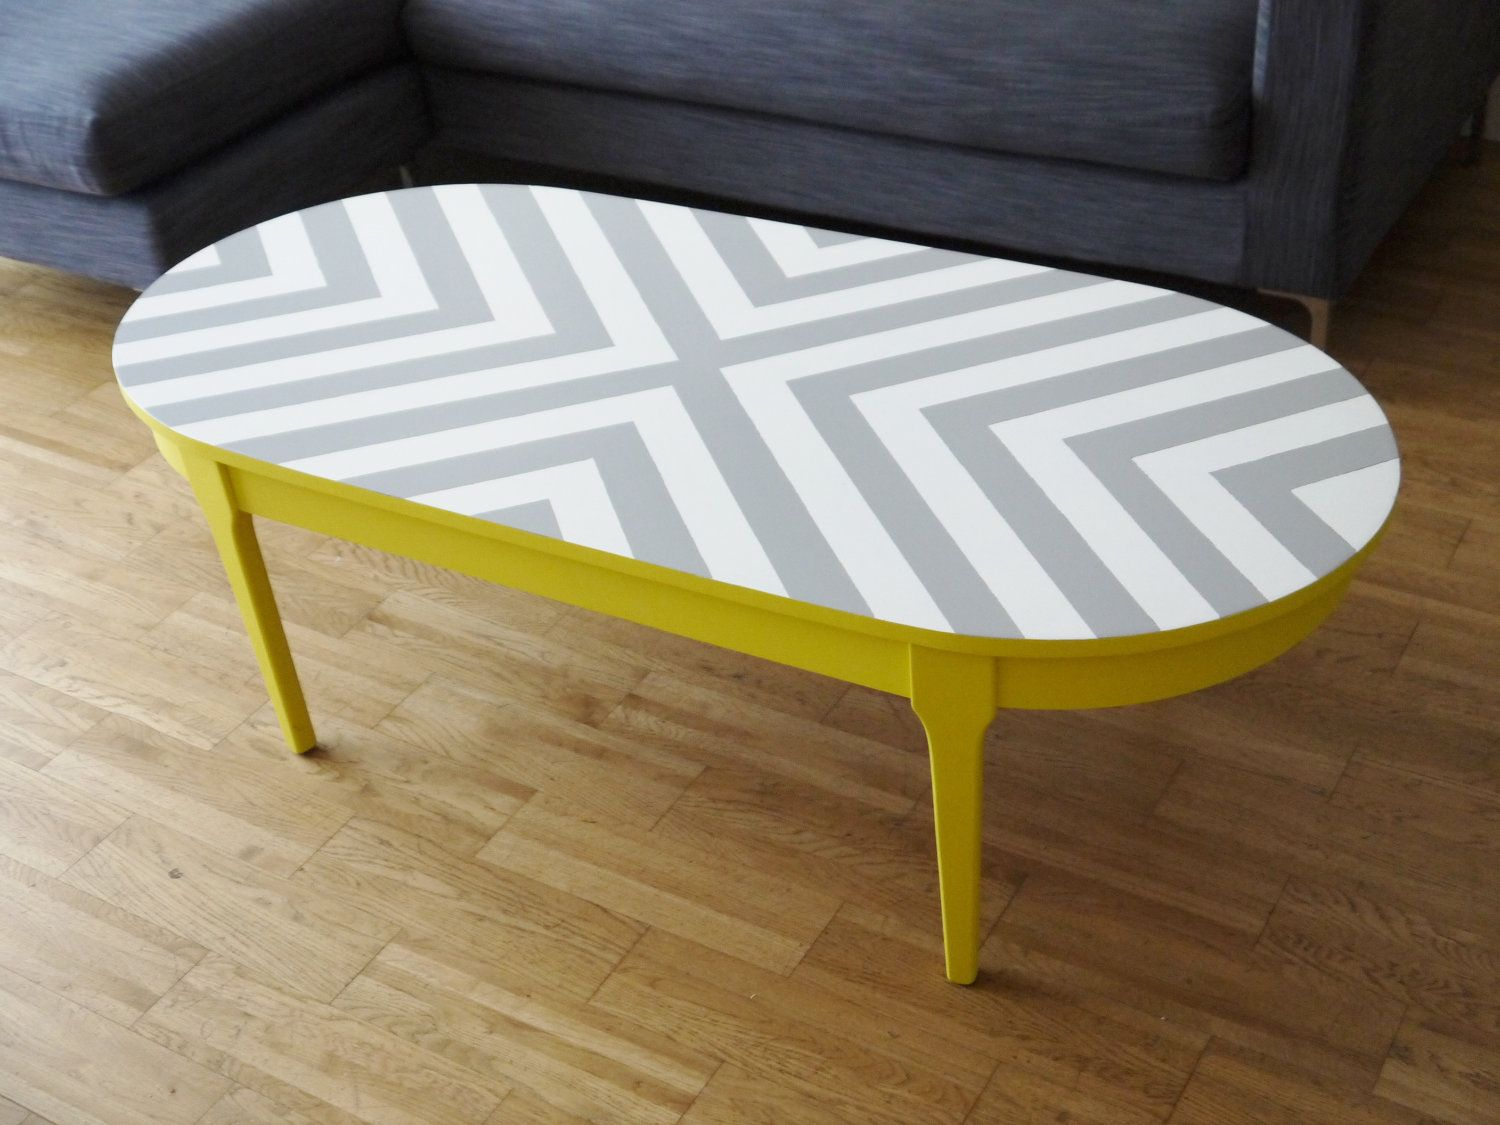 Items Similar To Bespoke Hand Painted Upcycled Geometric Chevron Oval Wood Coffee Table On Etsy Painted Coffee Tables Coffee Table Painted Table Tops [ 1125 x 1500 Pixel ]